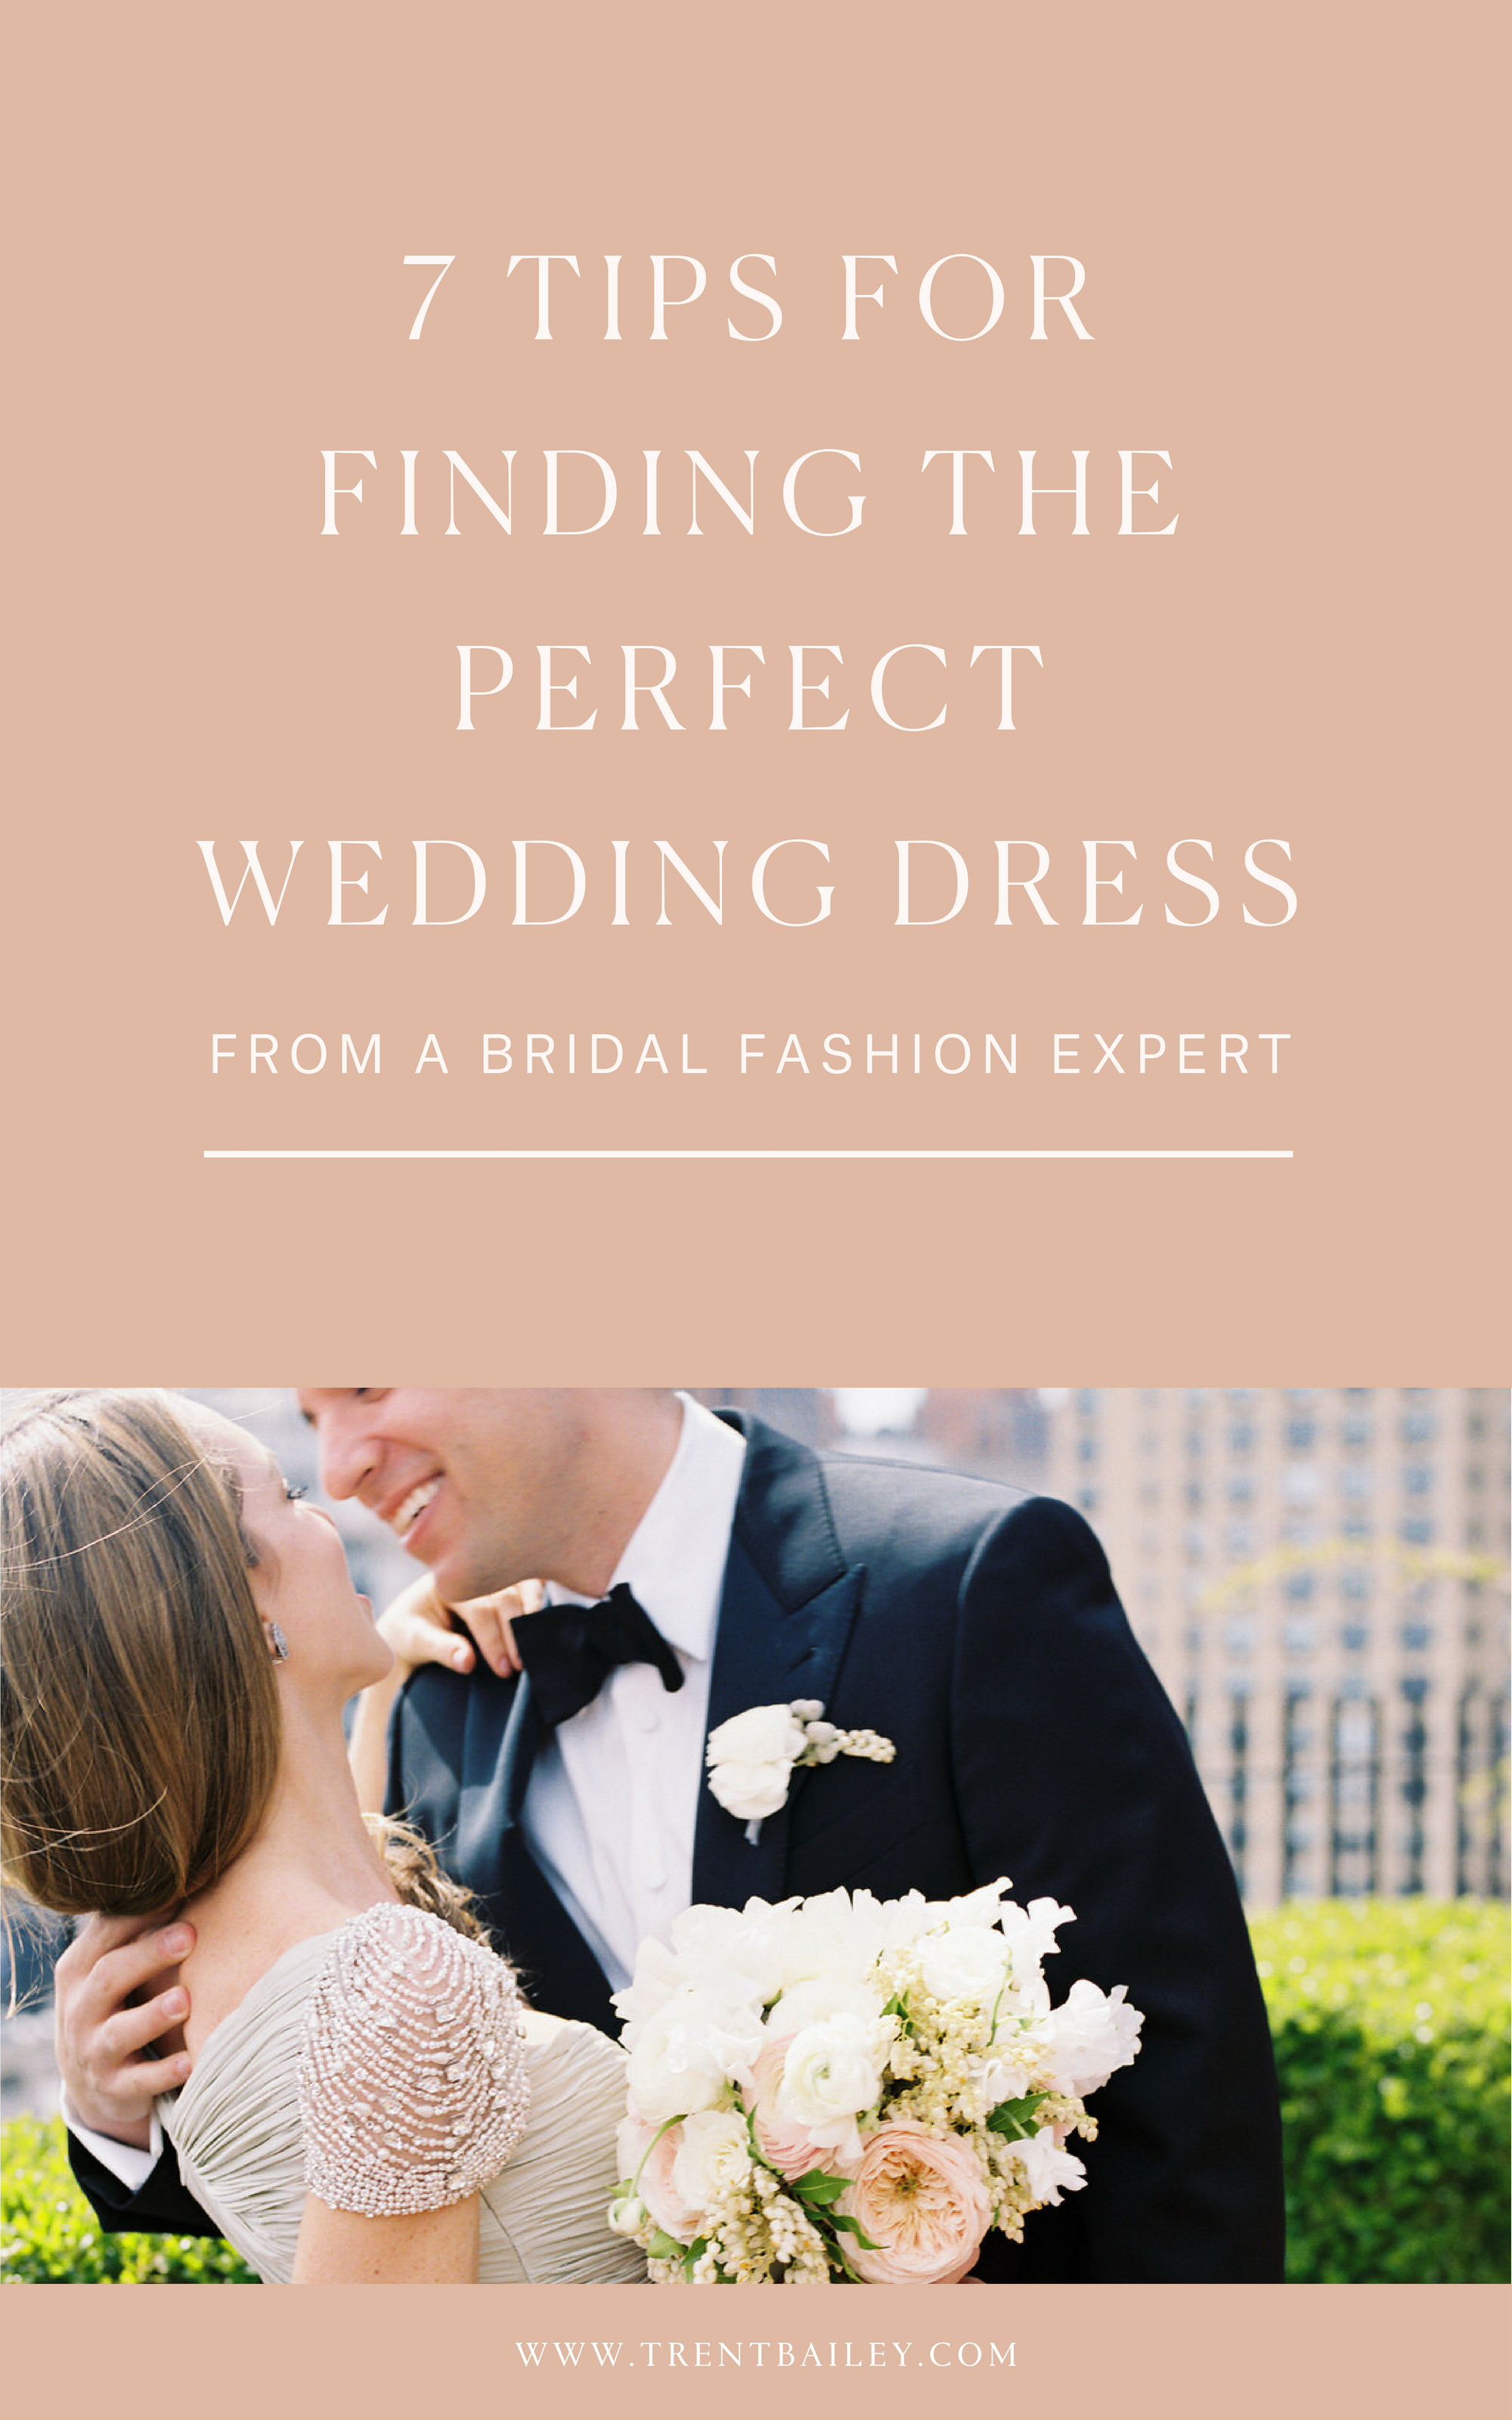 1 - 7 TIPS FOR FINDING YOUR WEDDING DRESS